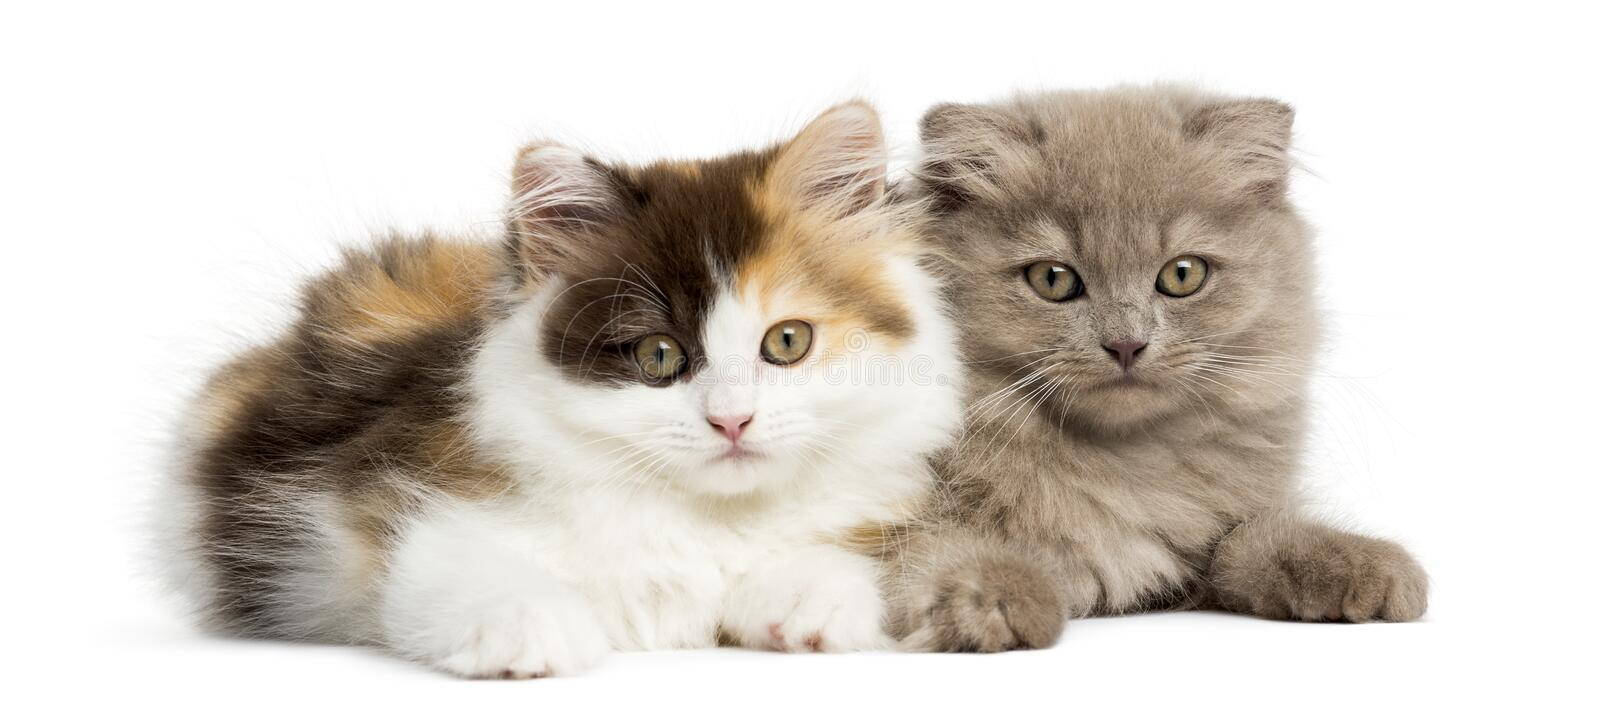 Two Highland fold kittens playing together, isolated stock photos